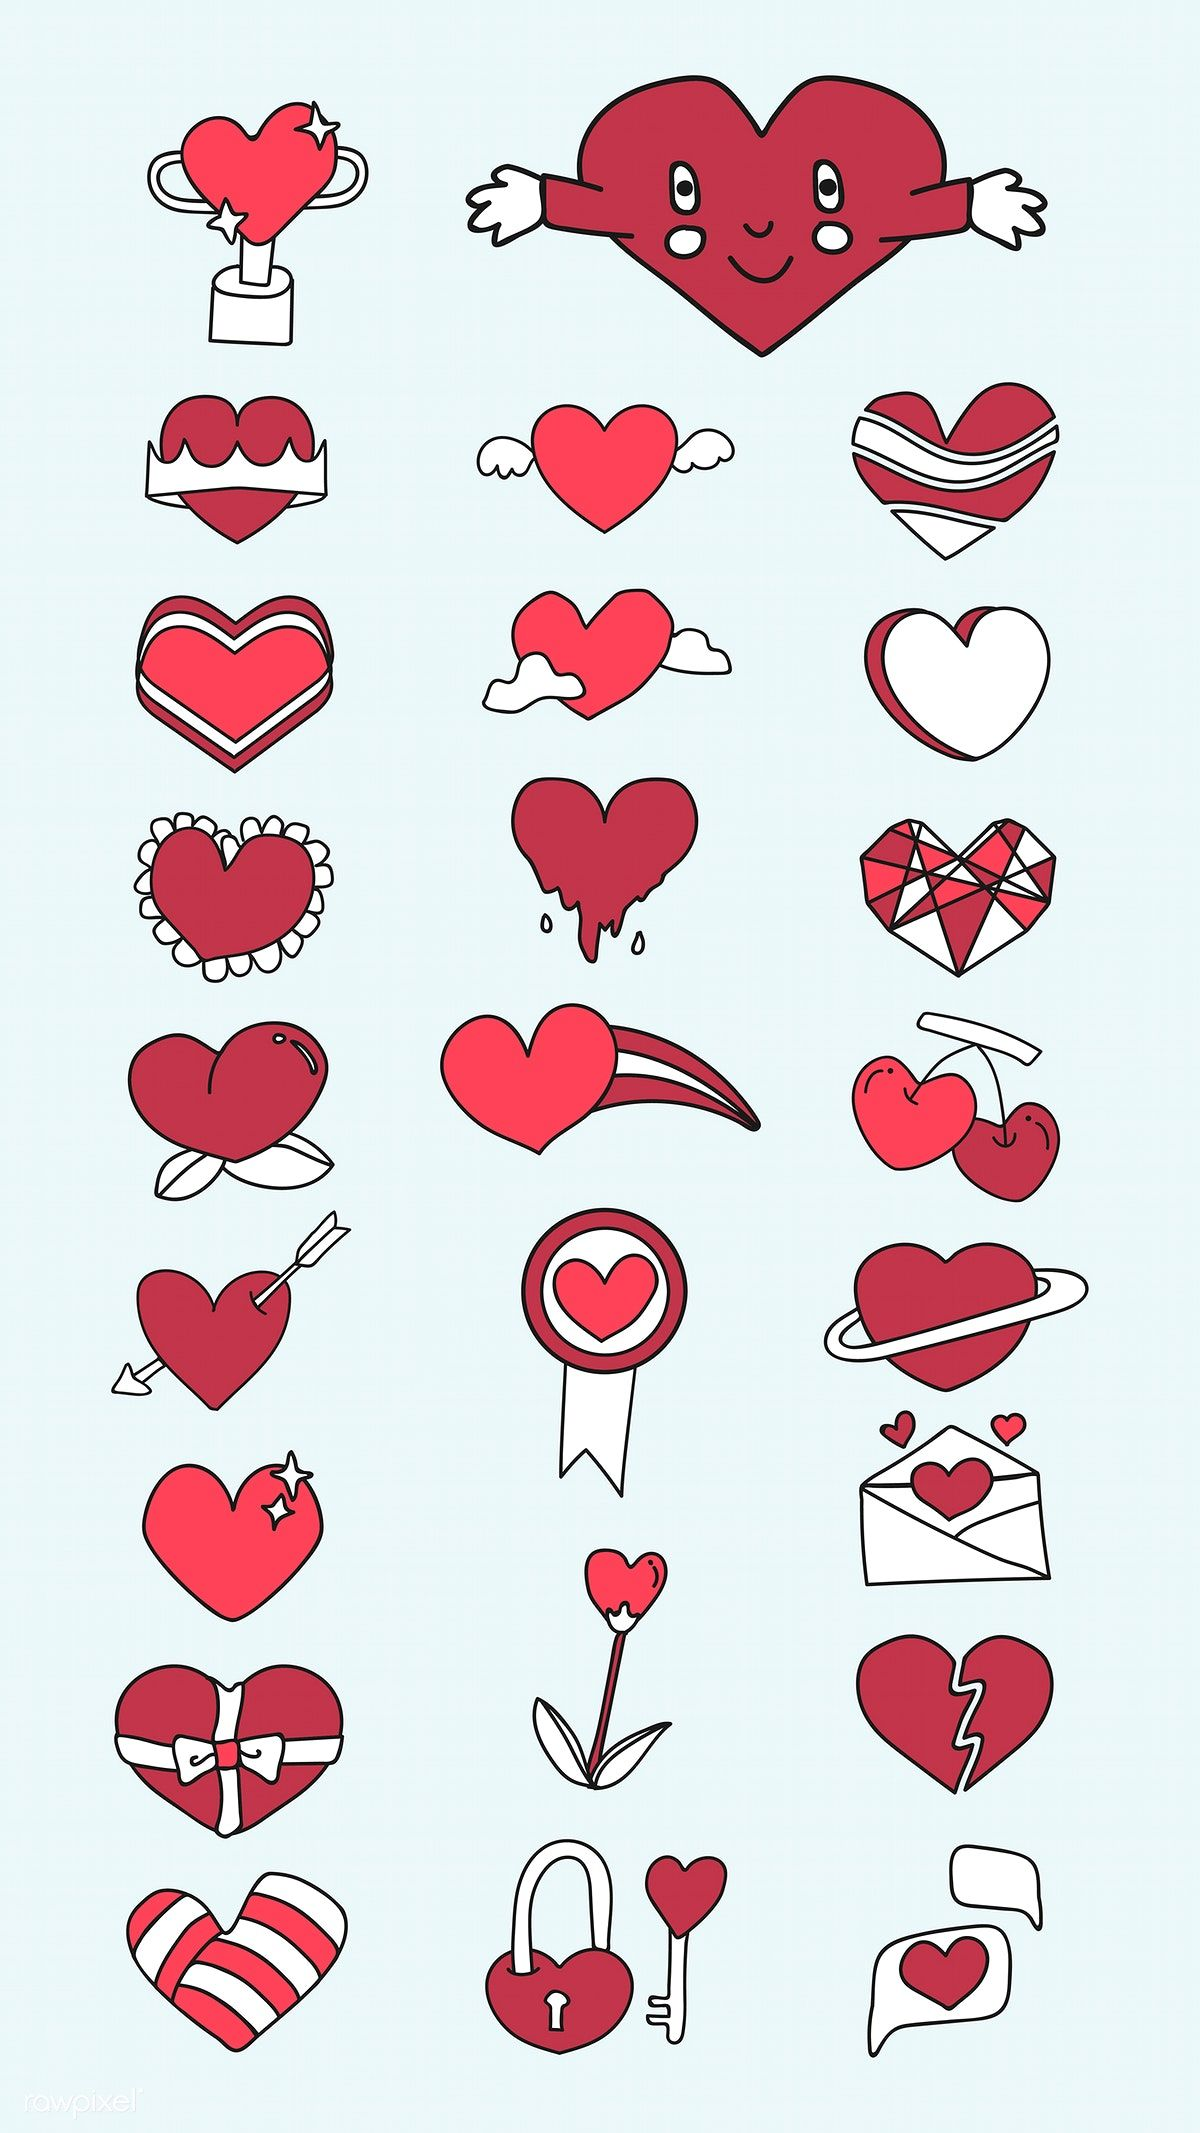 Download premium vector of Red heart design collection